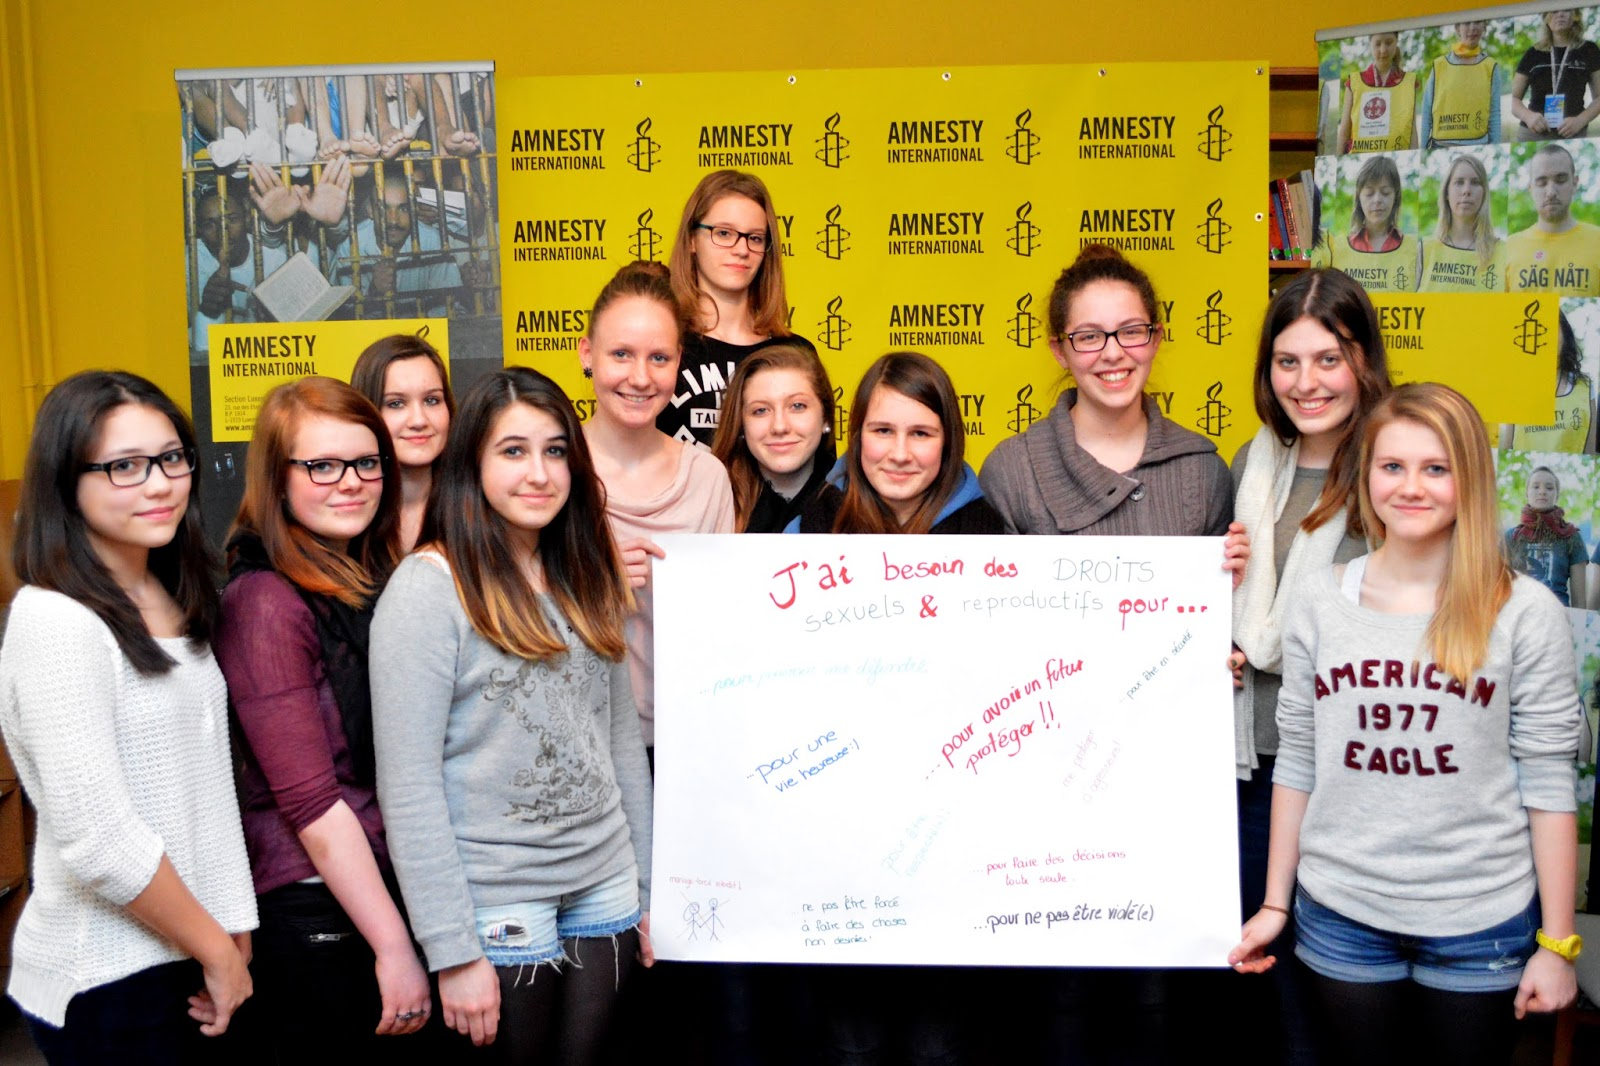 http://amnesty-luxembourg-photos.blogspot.com/2014/03/workshop-my-body-my-rights.html